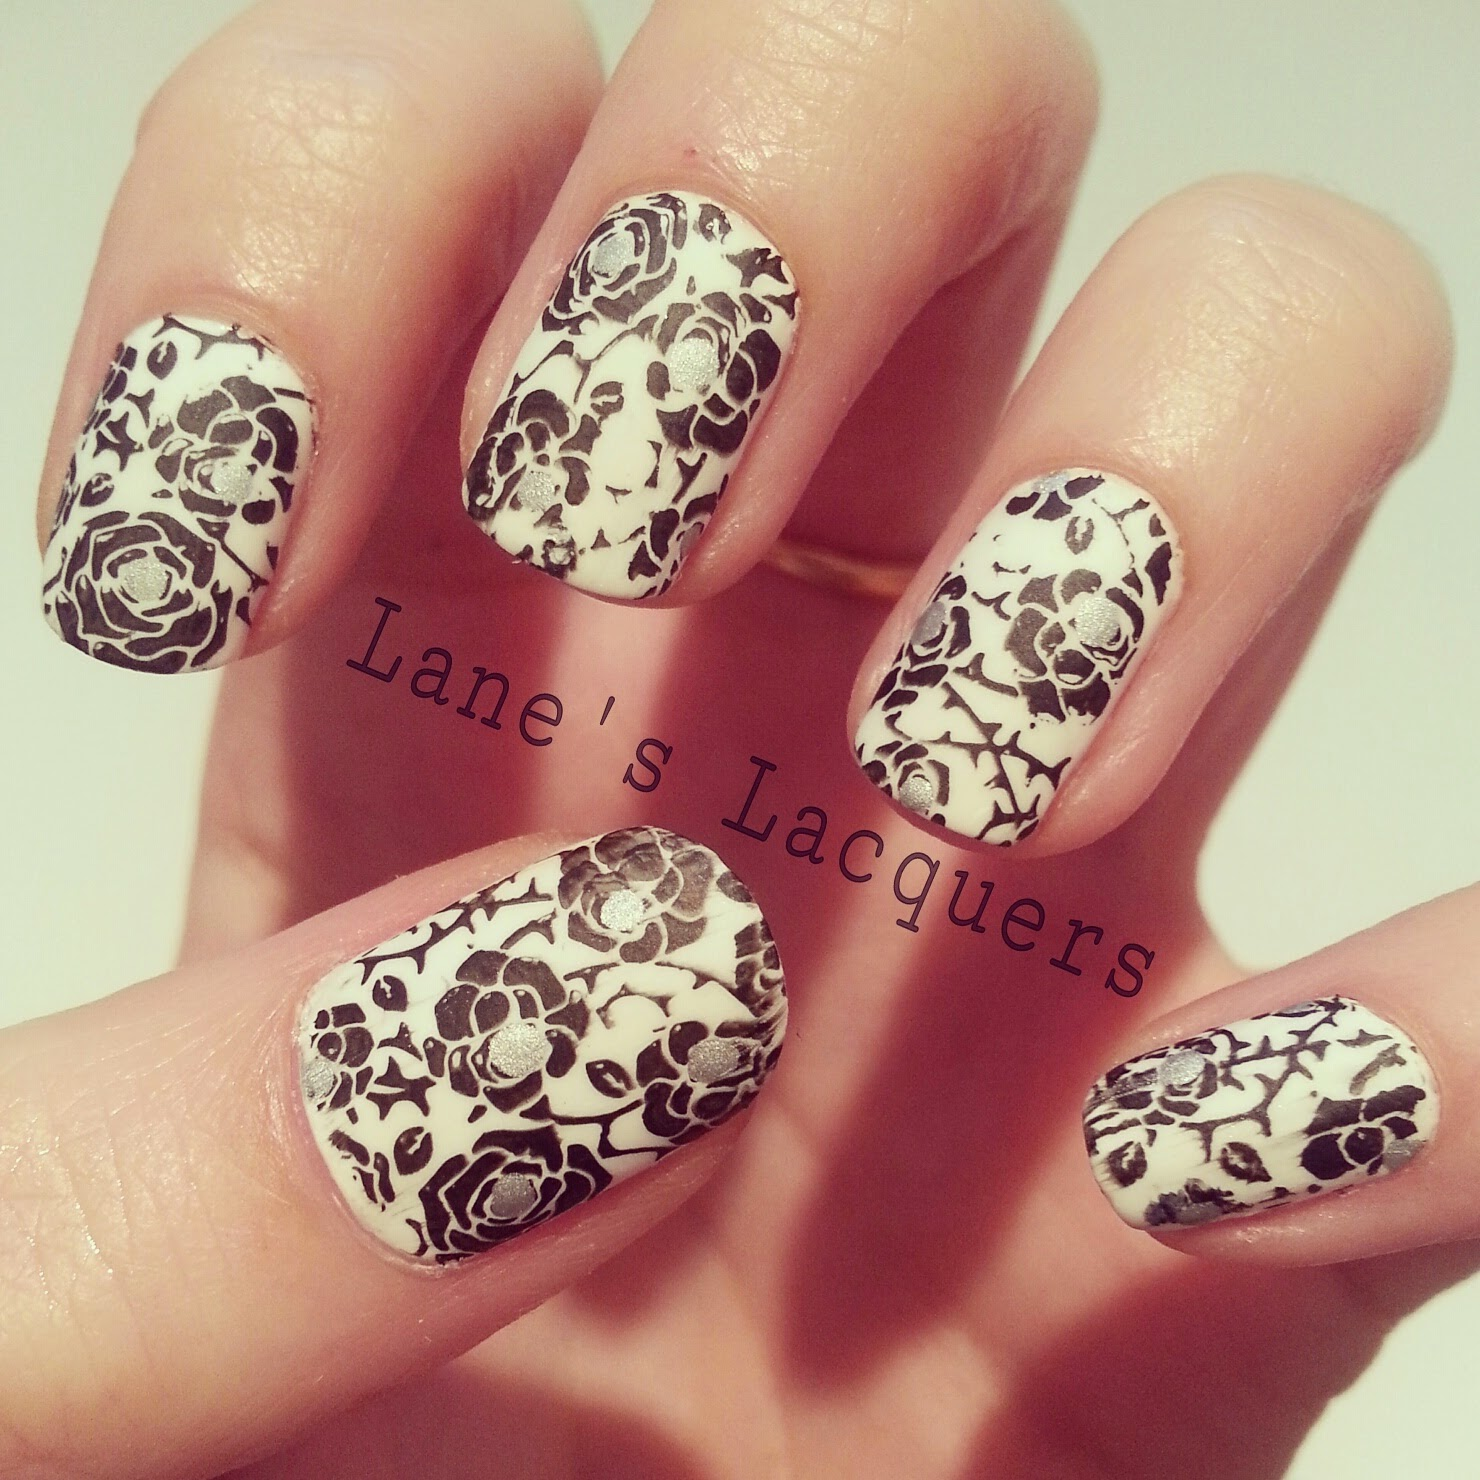 quiz-dress-nail-art-competition-black-and-white-matte-roses-manicure